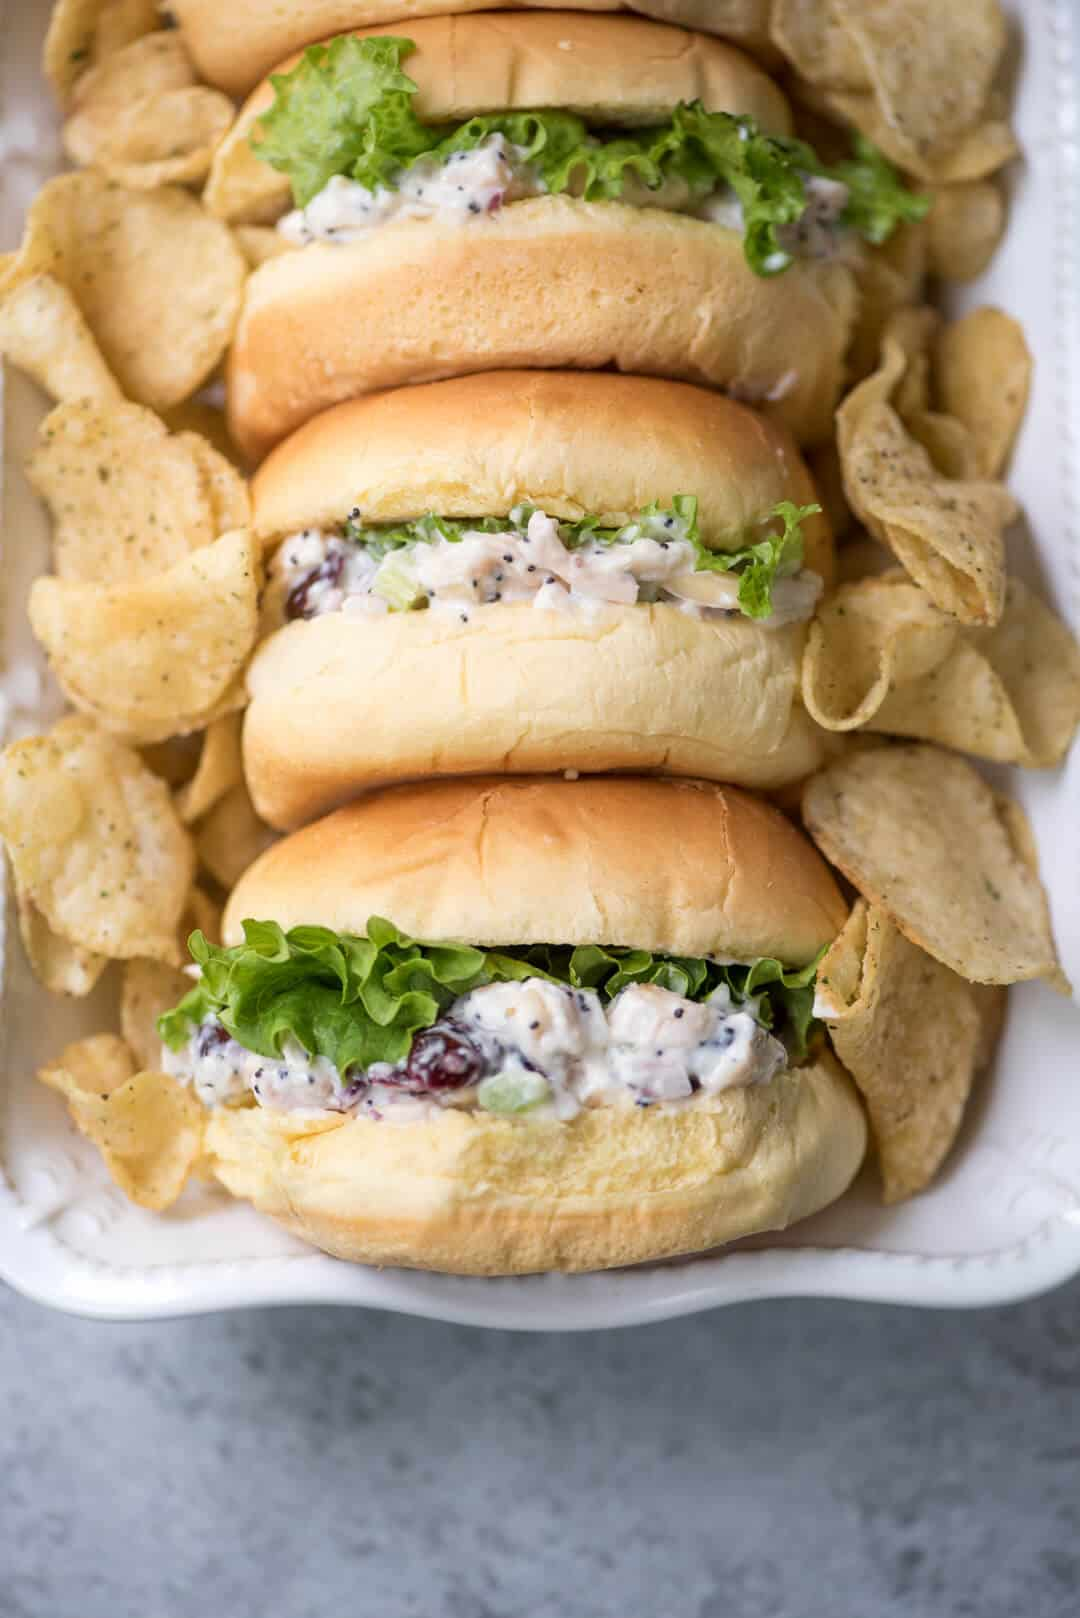 Cranberry Almond Poppy Seed Chicken Salad on potato buns with green leaf lettuce in a white serving dish with potato chips.